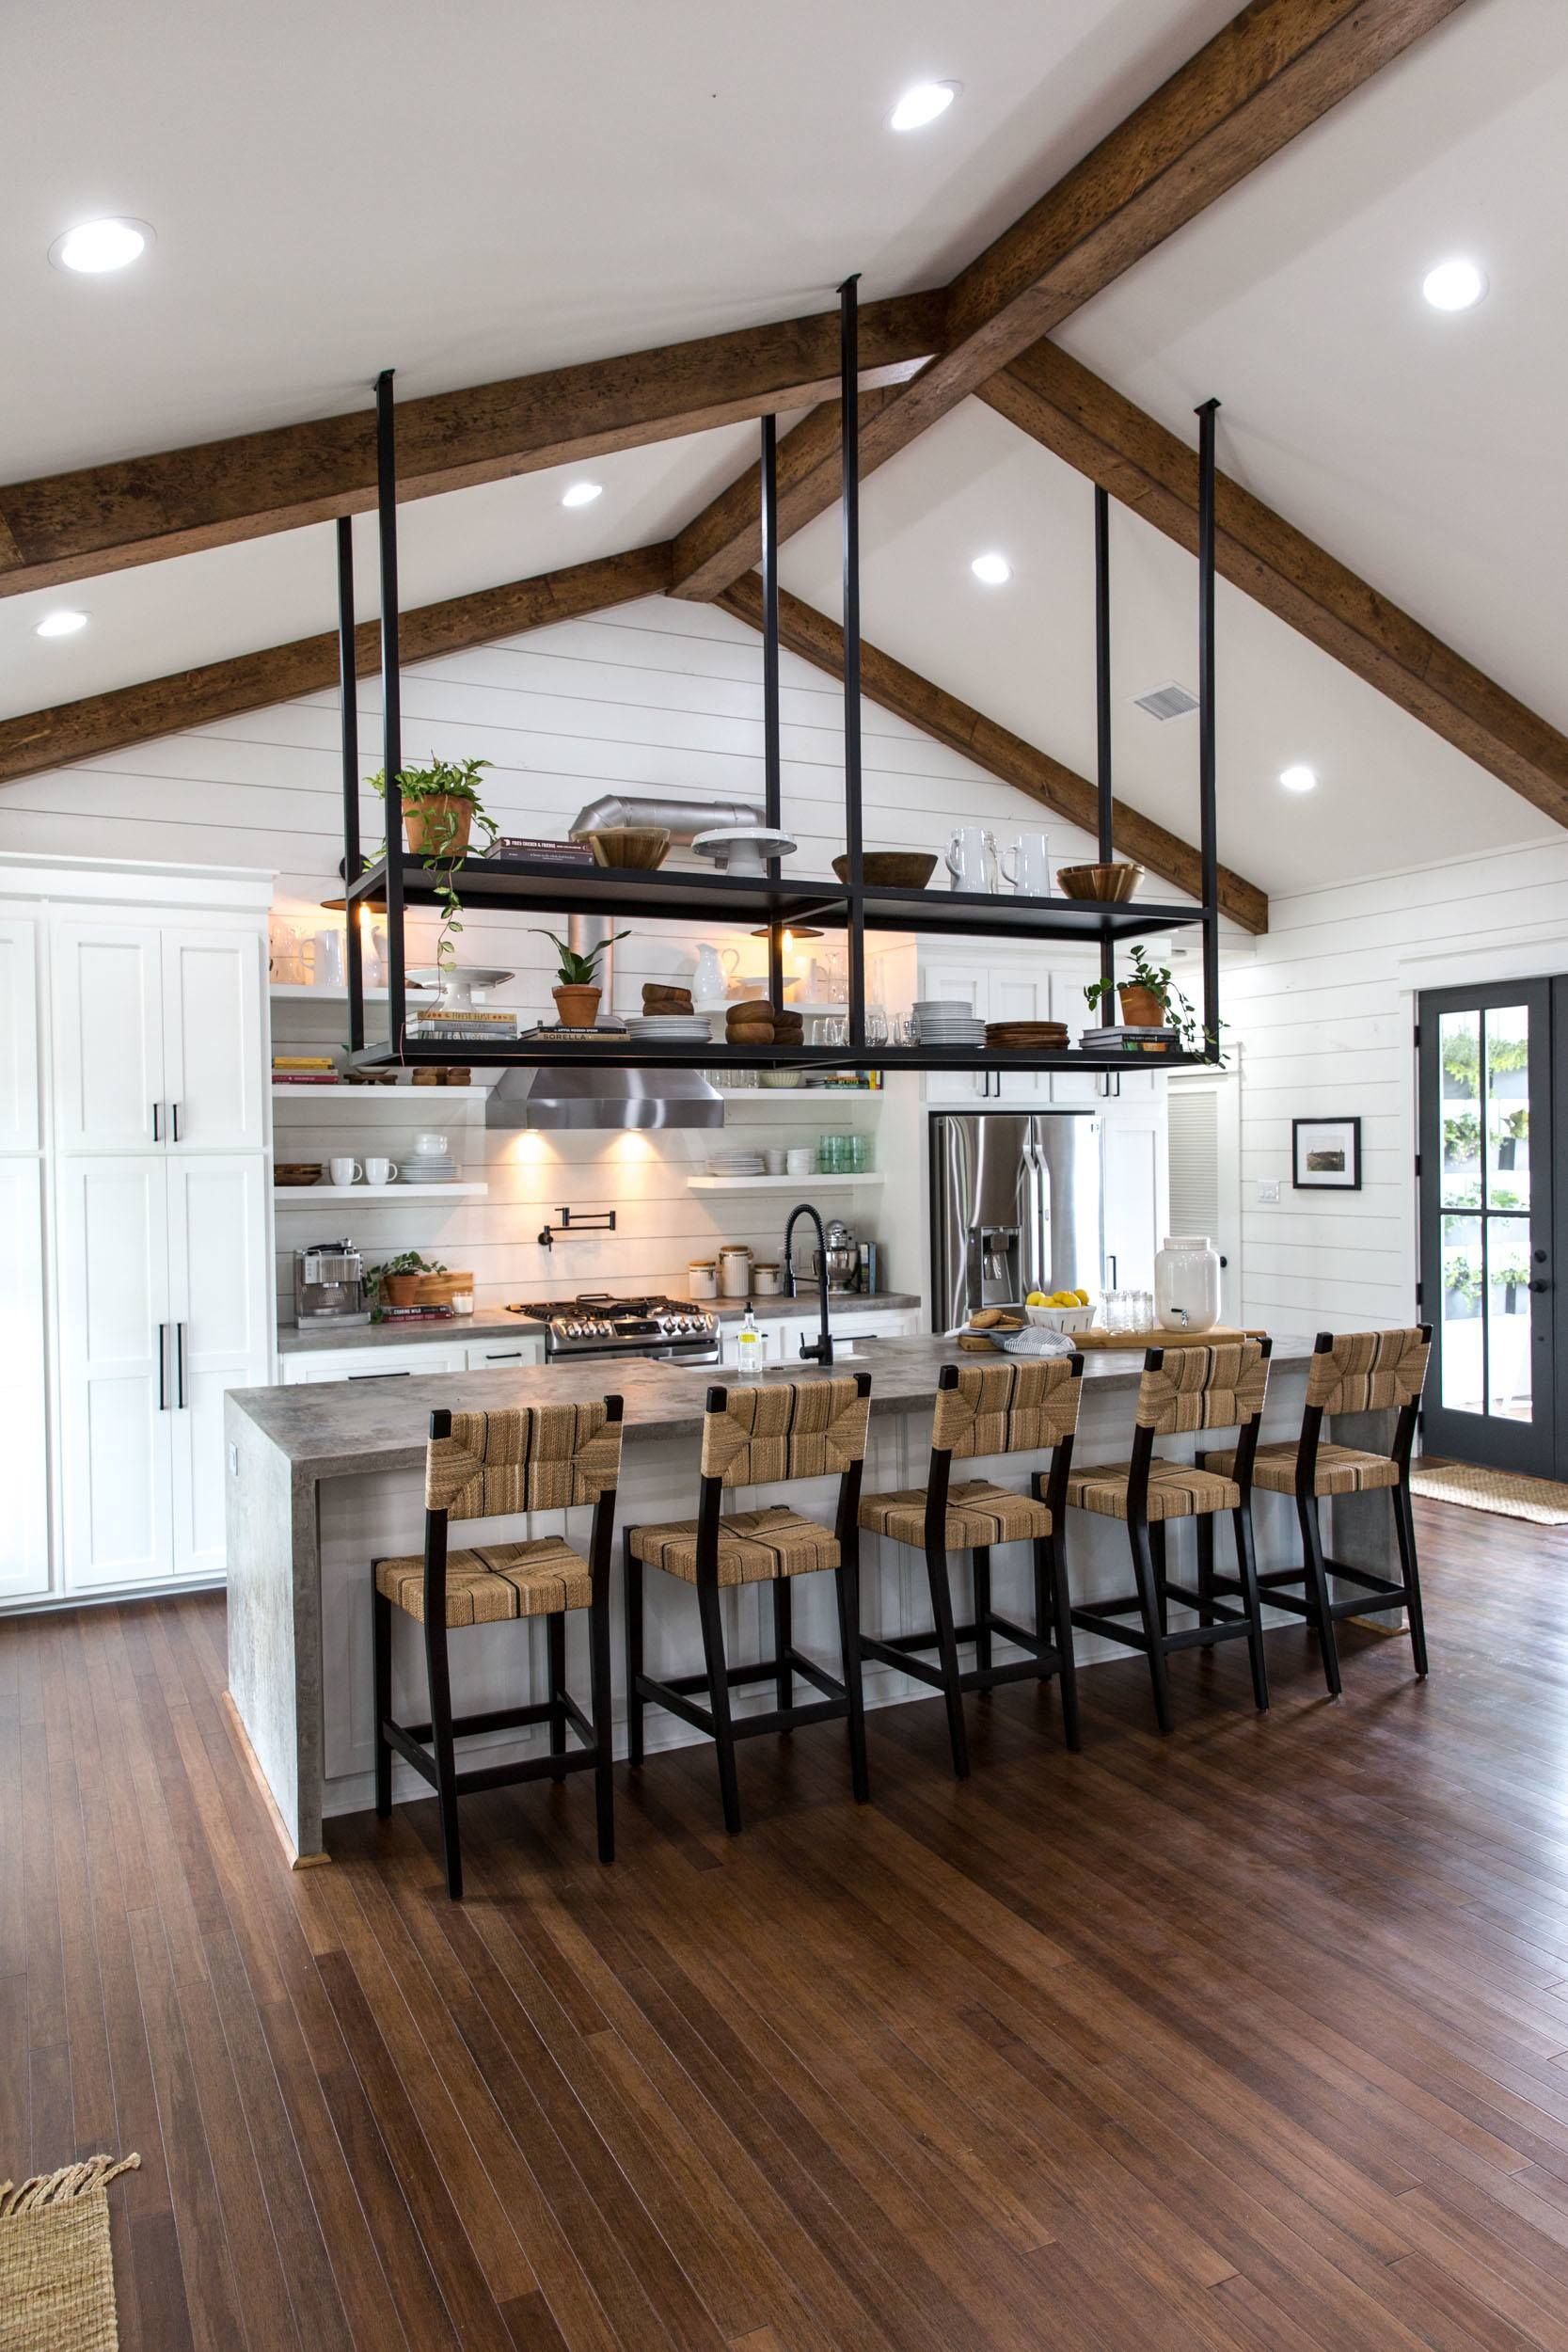 Fixer Upper Season 4 Episode 16 The Little Shack On Prairie Chip And Joanna Gaines Waco Tx Kitchen